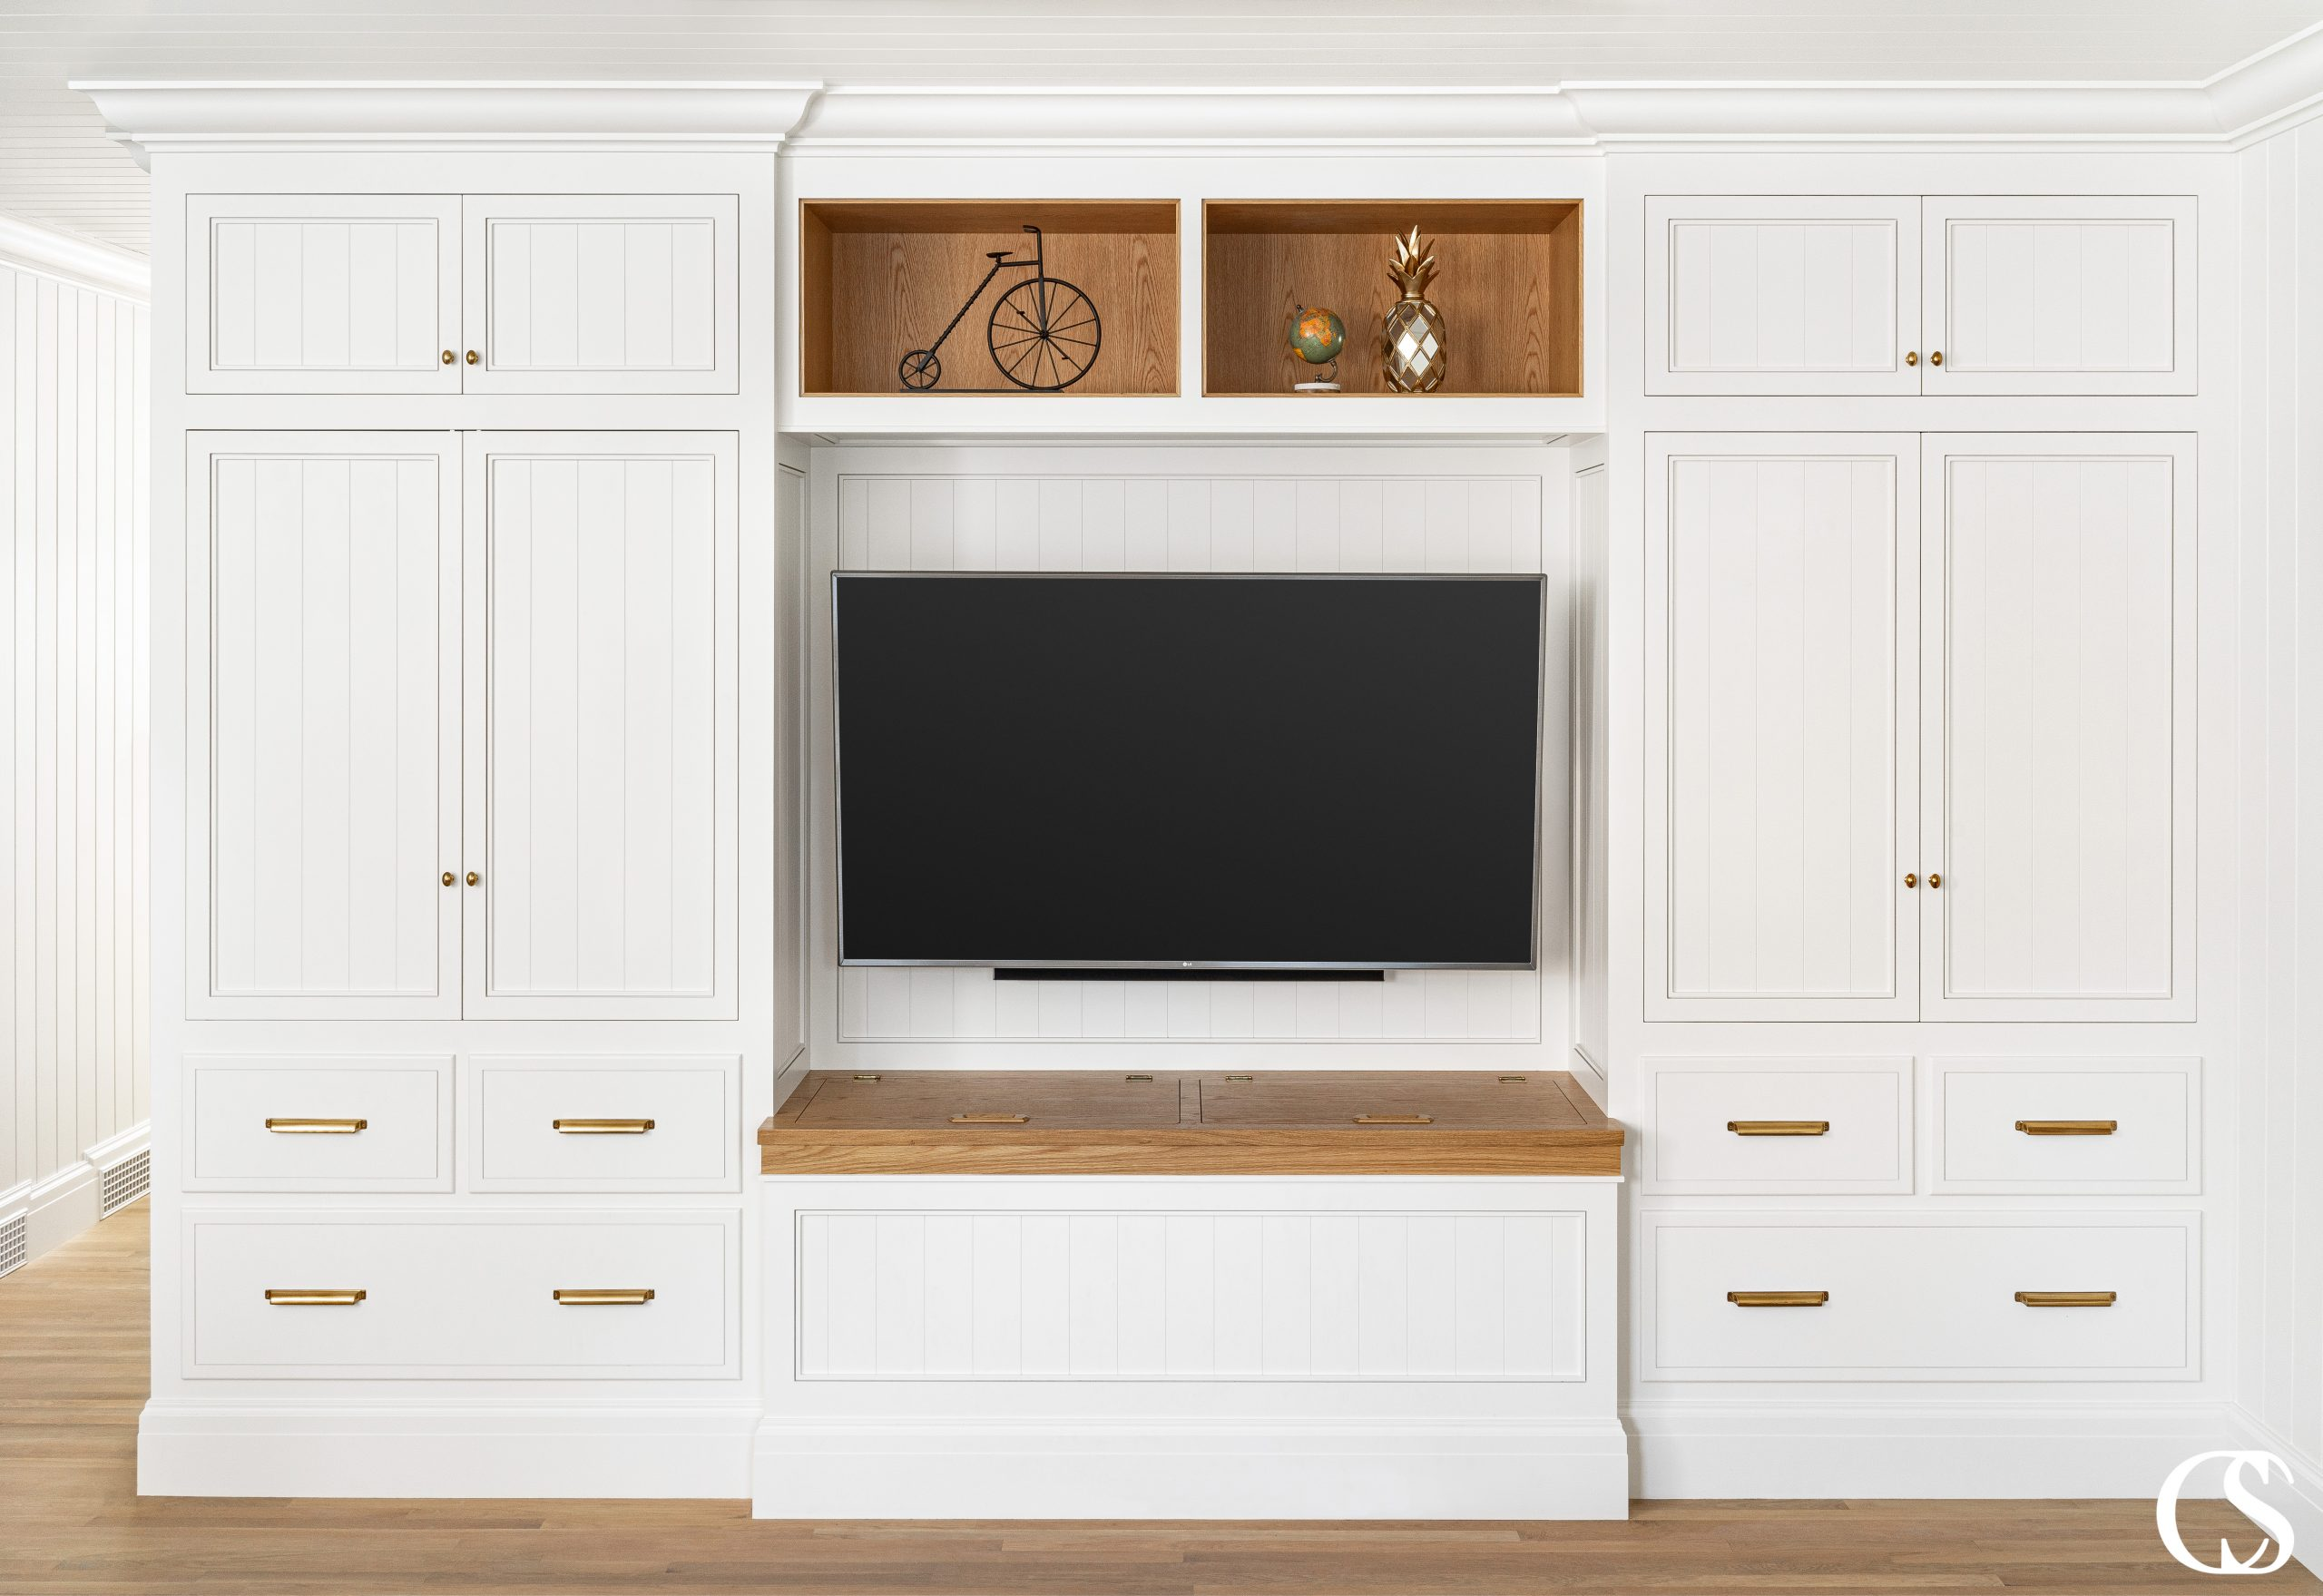 Those contrasting display shelves make this one of our most unique entertainment center ideas—you'd never find a custom cabinet design like this at the store.